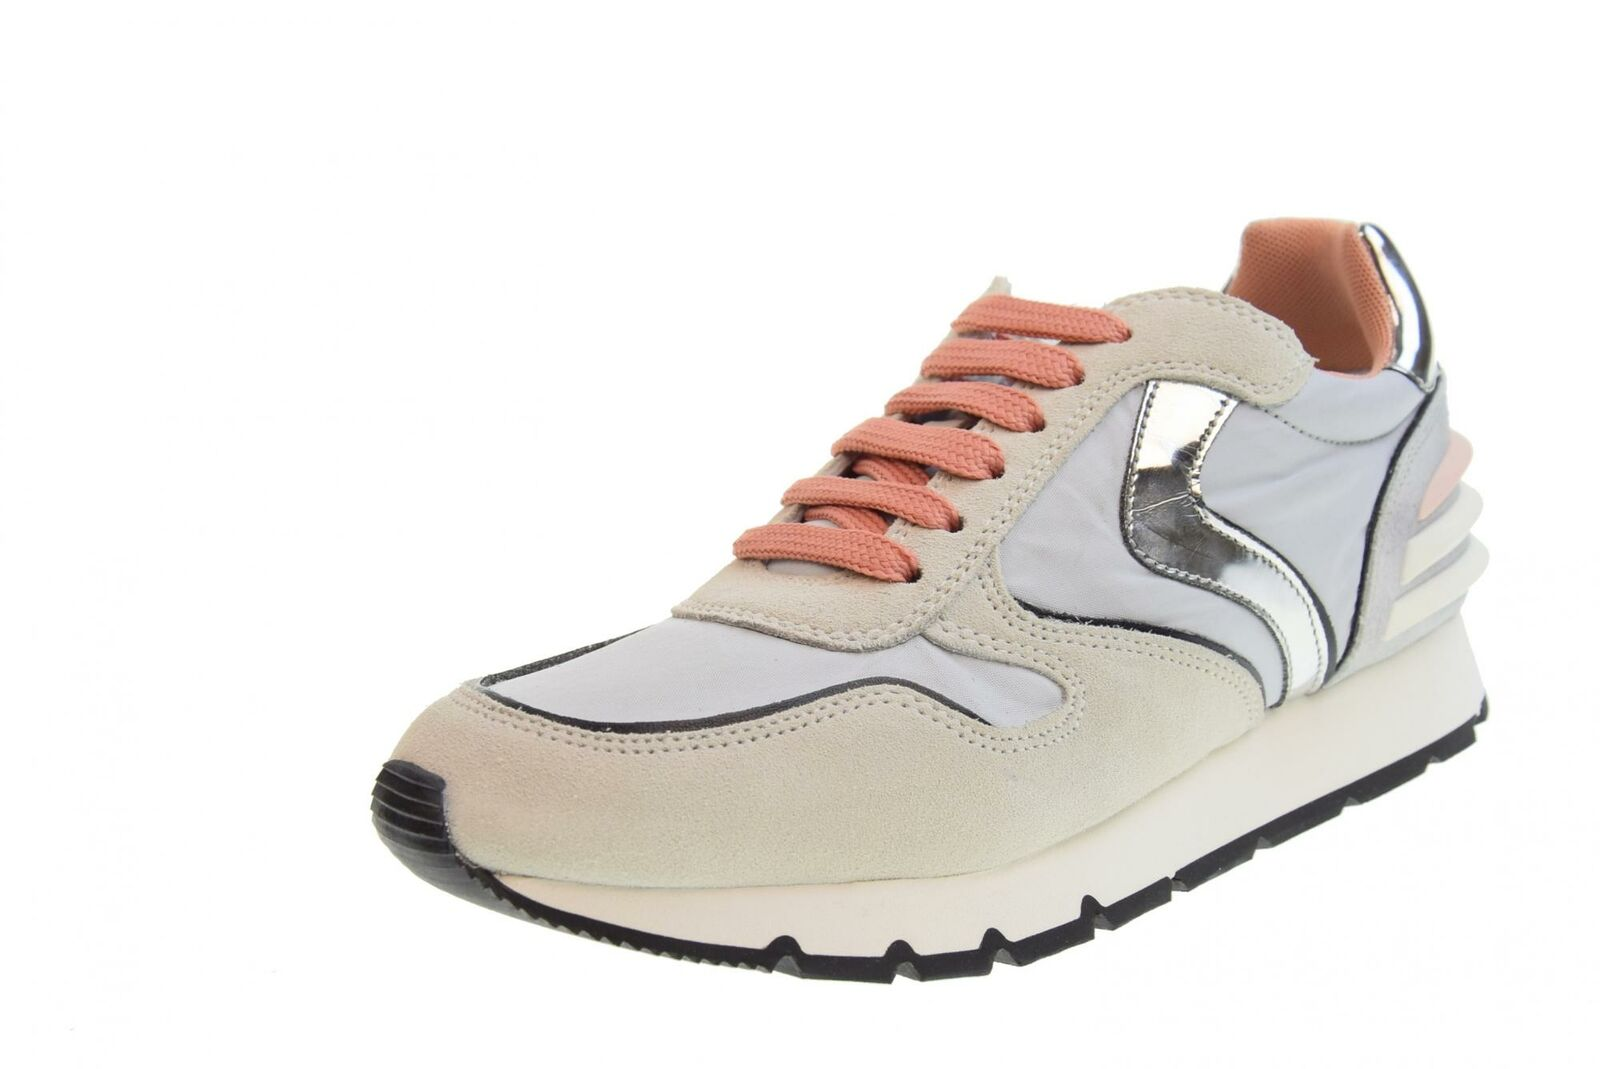 Voile Voile Voile whitehe P19f shoes femme sneakers 0012013539.01.1N14 JULIA 98cfd0